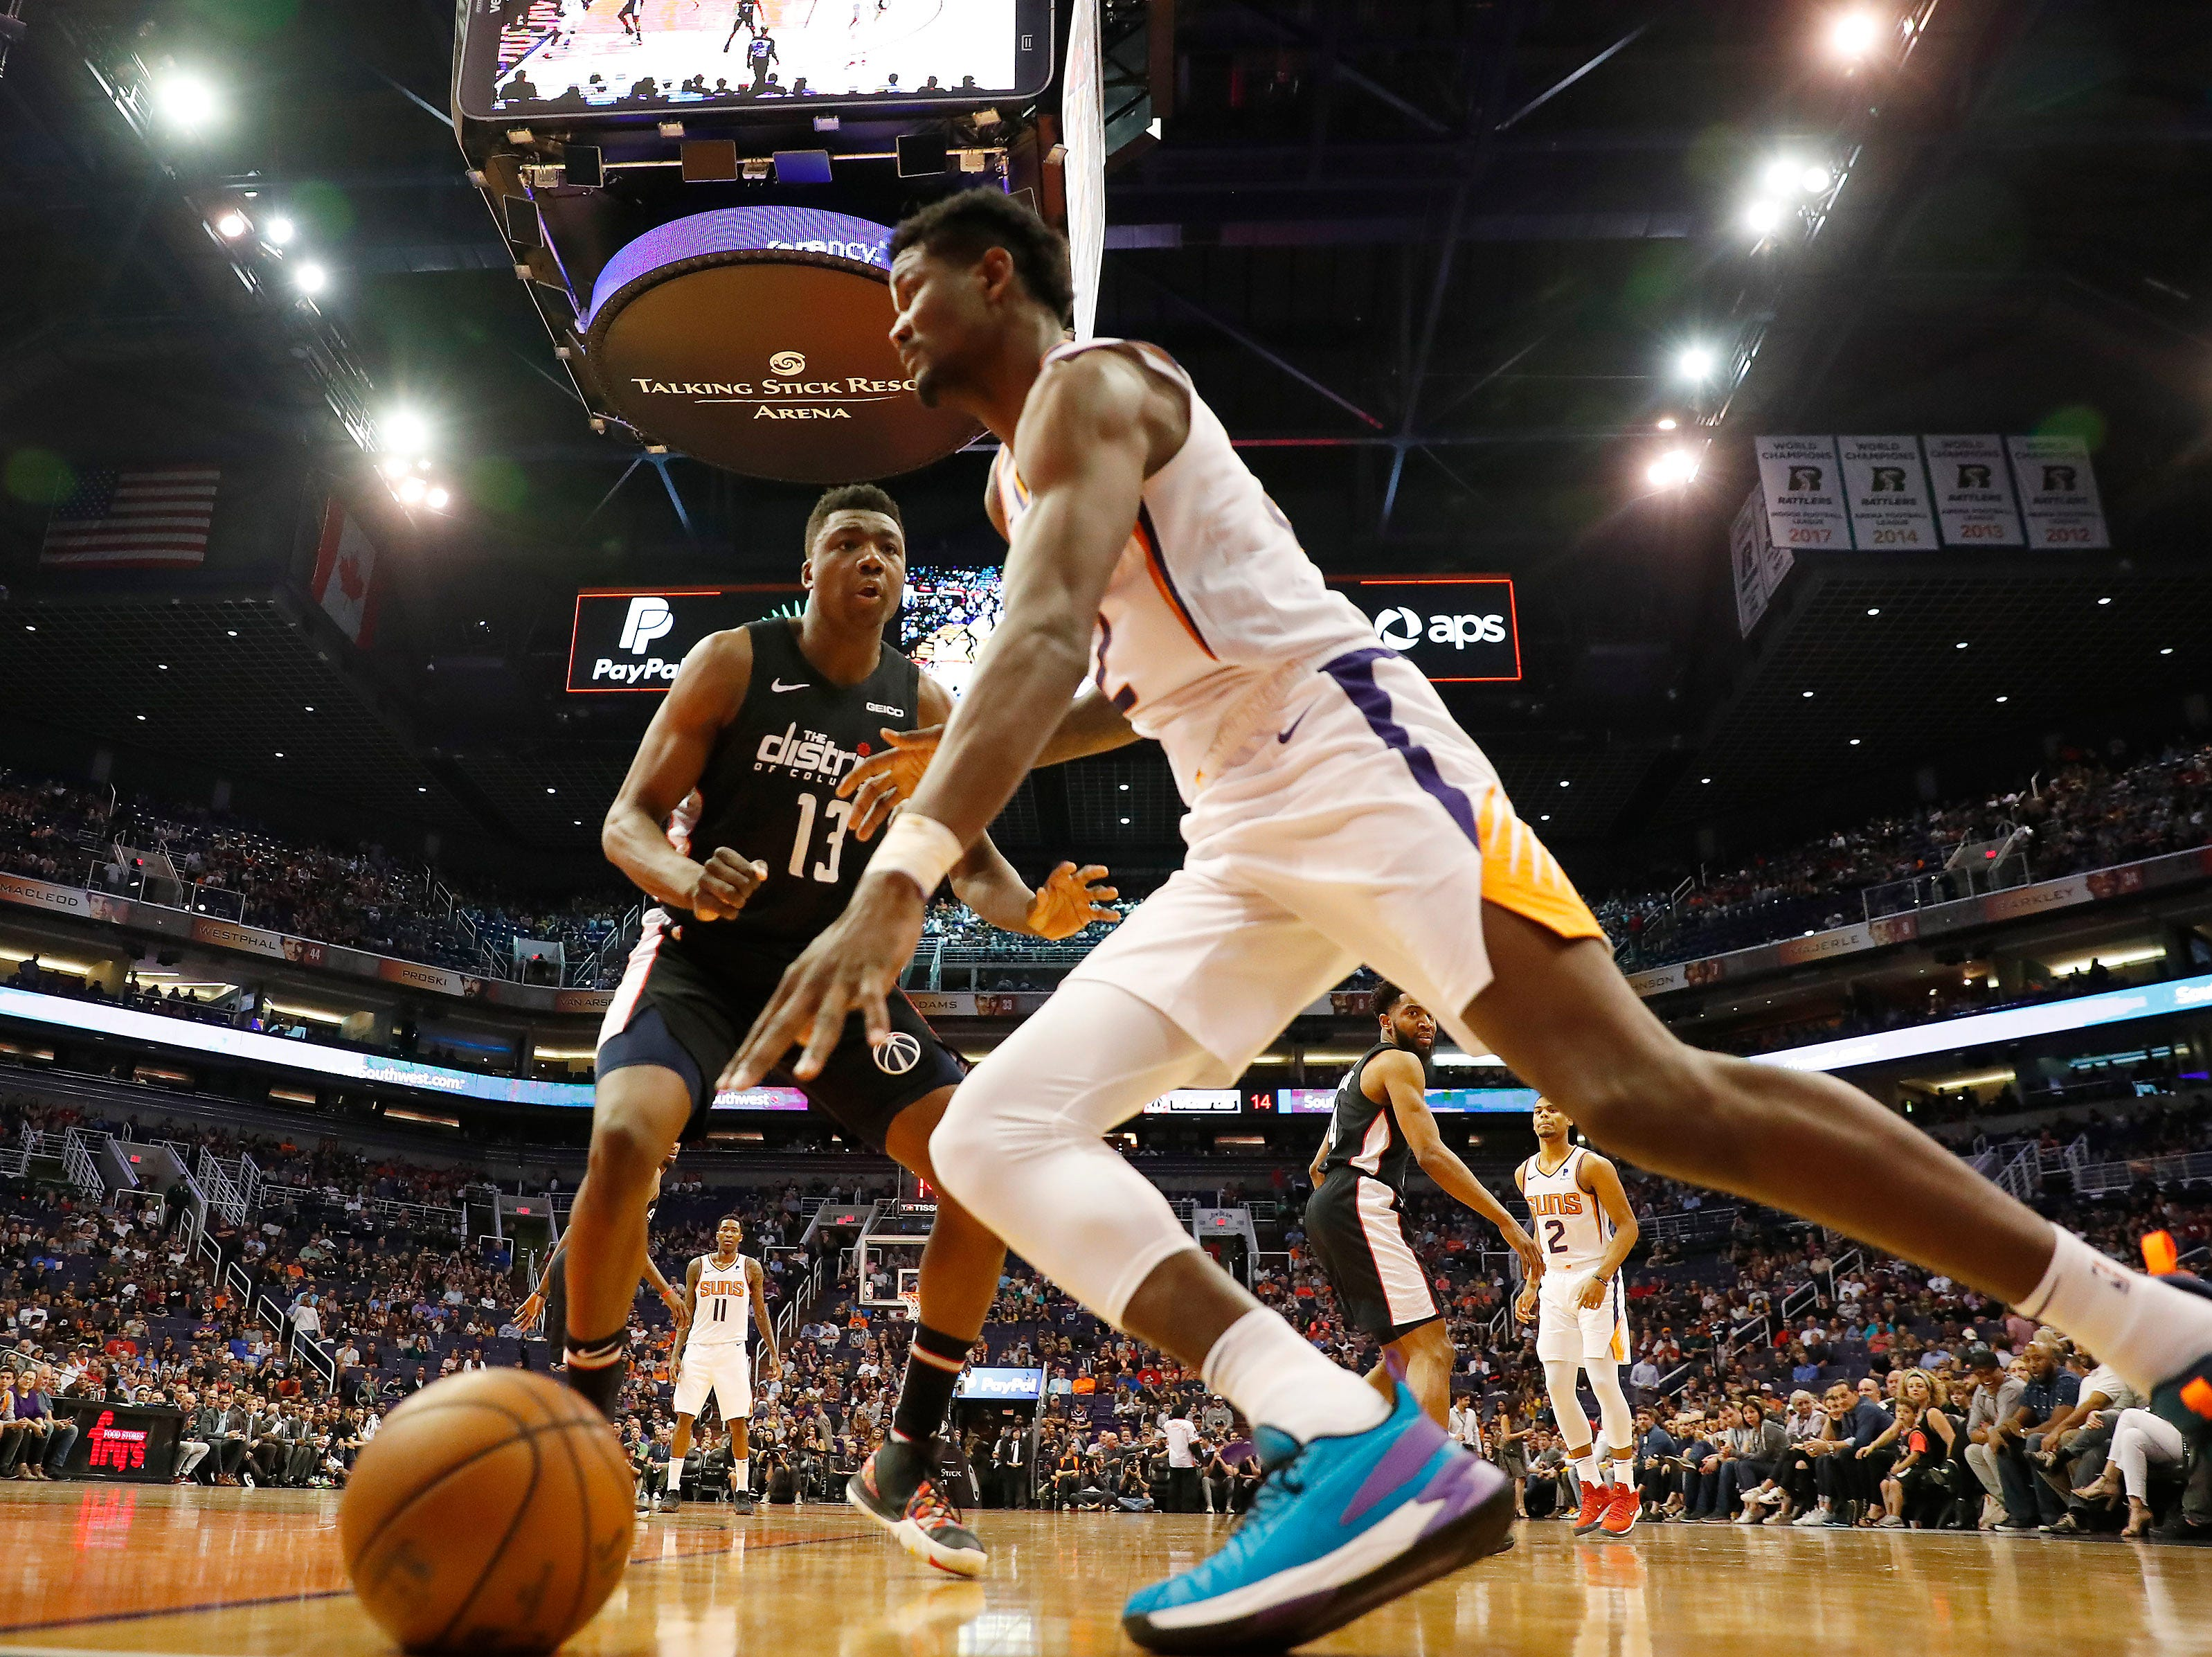 Phoenix Suns center Deandre Ayton (22) drives towards the basket against Washington Wizards center Thomas Bryant (13) during the second quarter in Phoenix March 27, 2019.